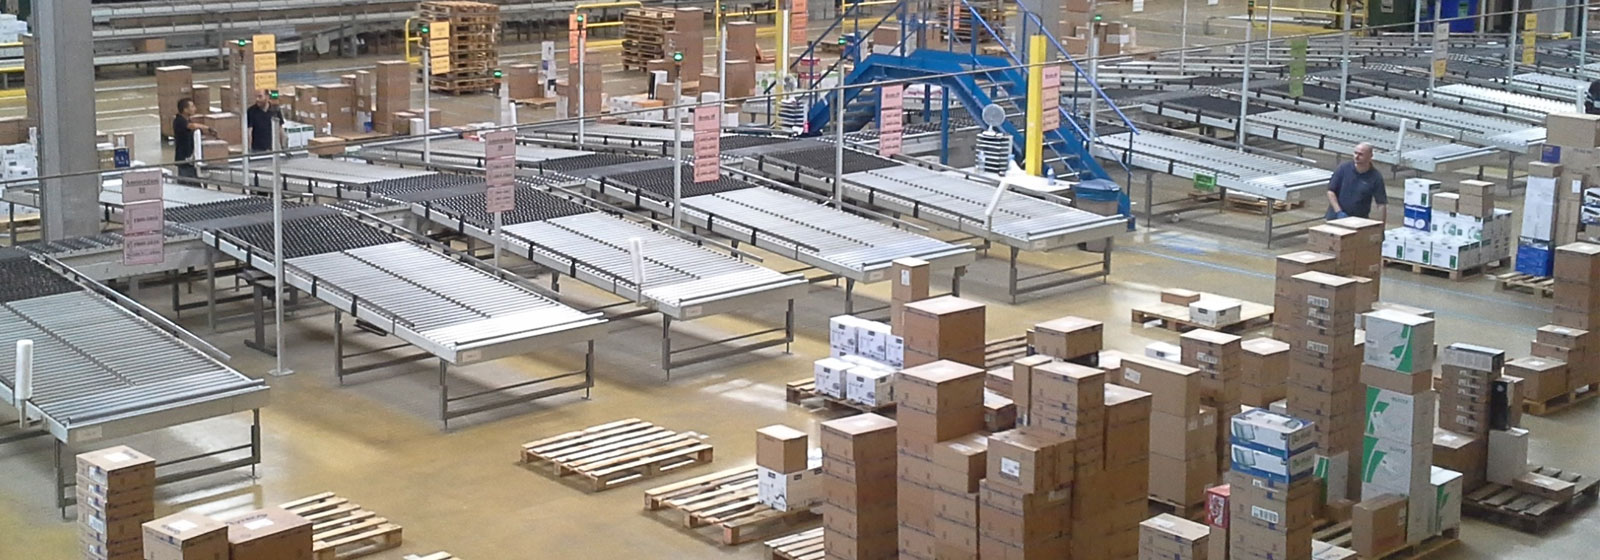 Wholesale / Supply Chain